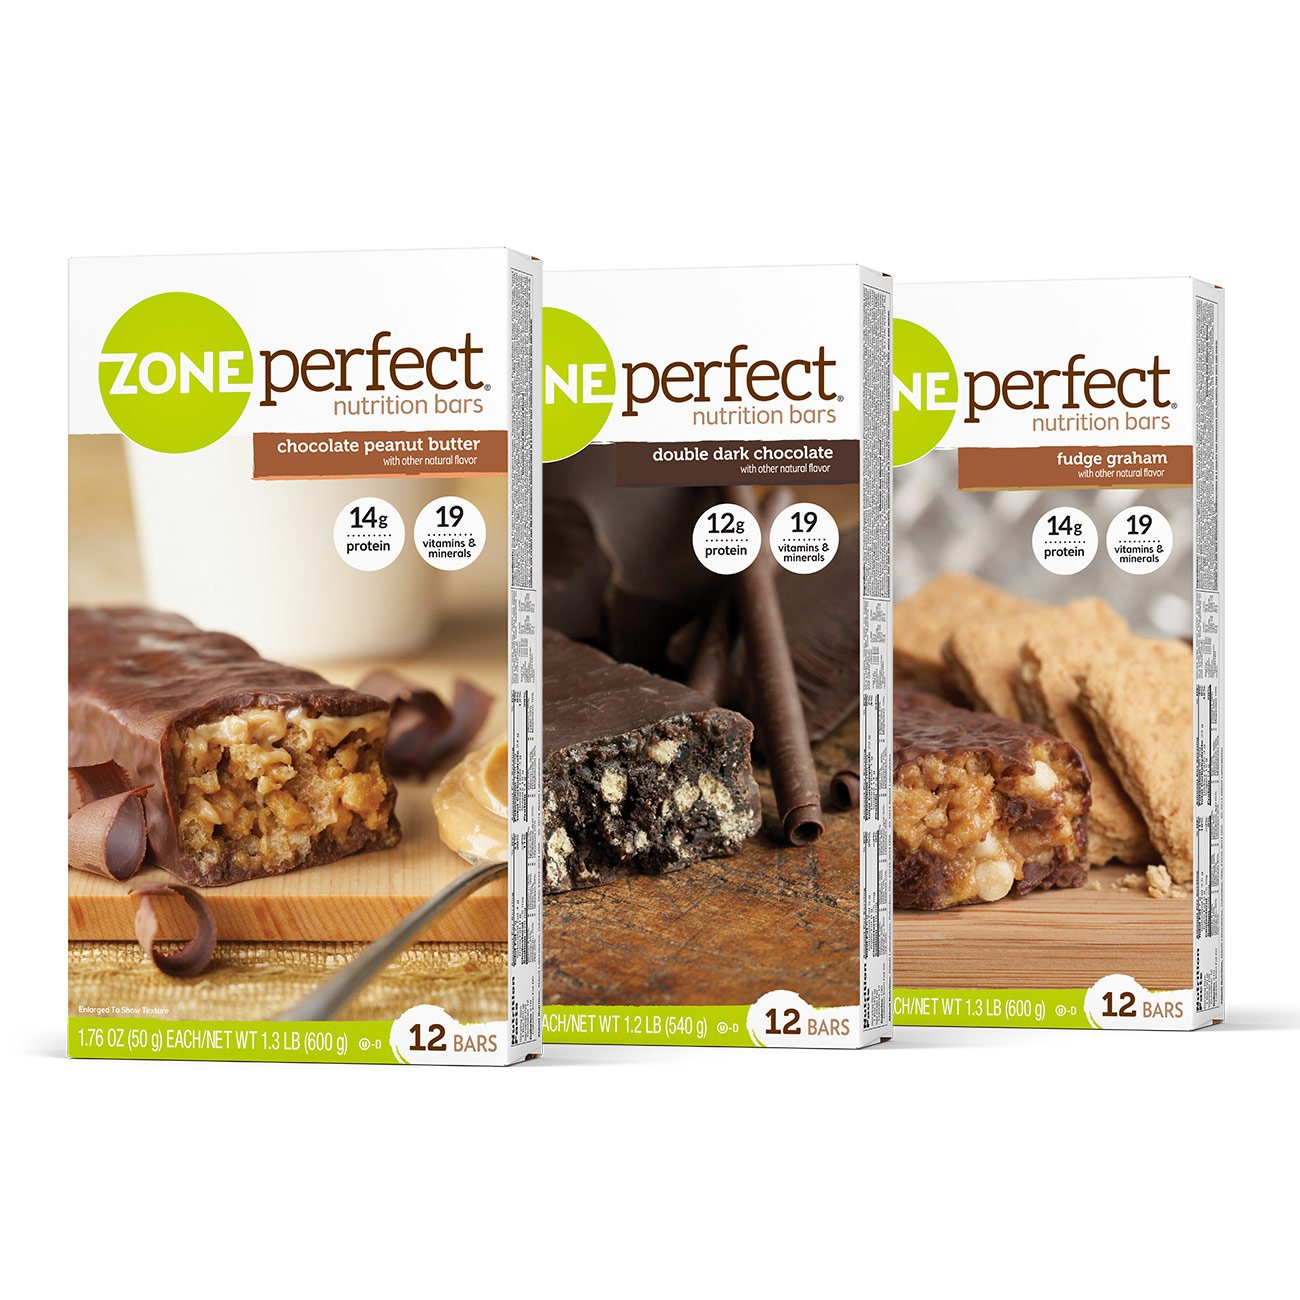 ZonePerfect Nutrition Snack Bars, Variety Pack, (36 Count) by Zoneperfect Classic (Image #6)